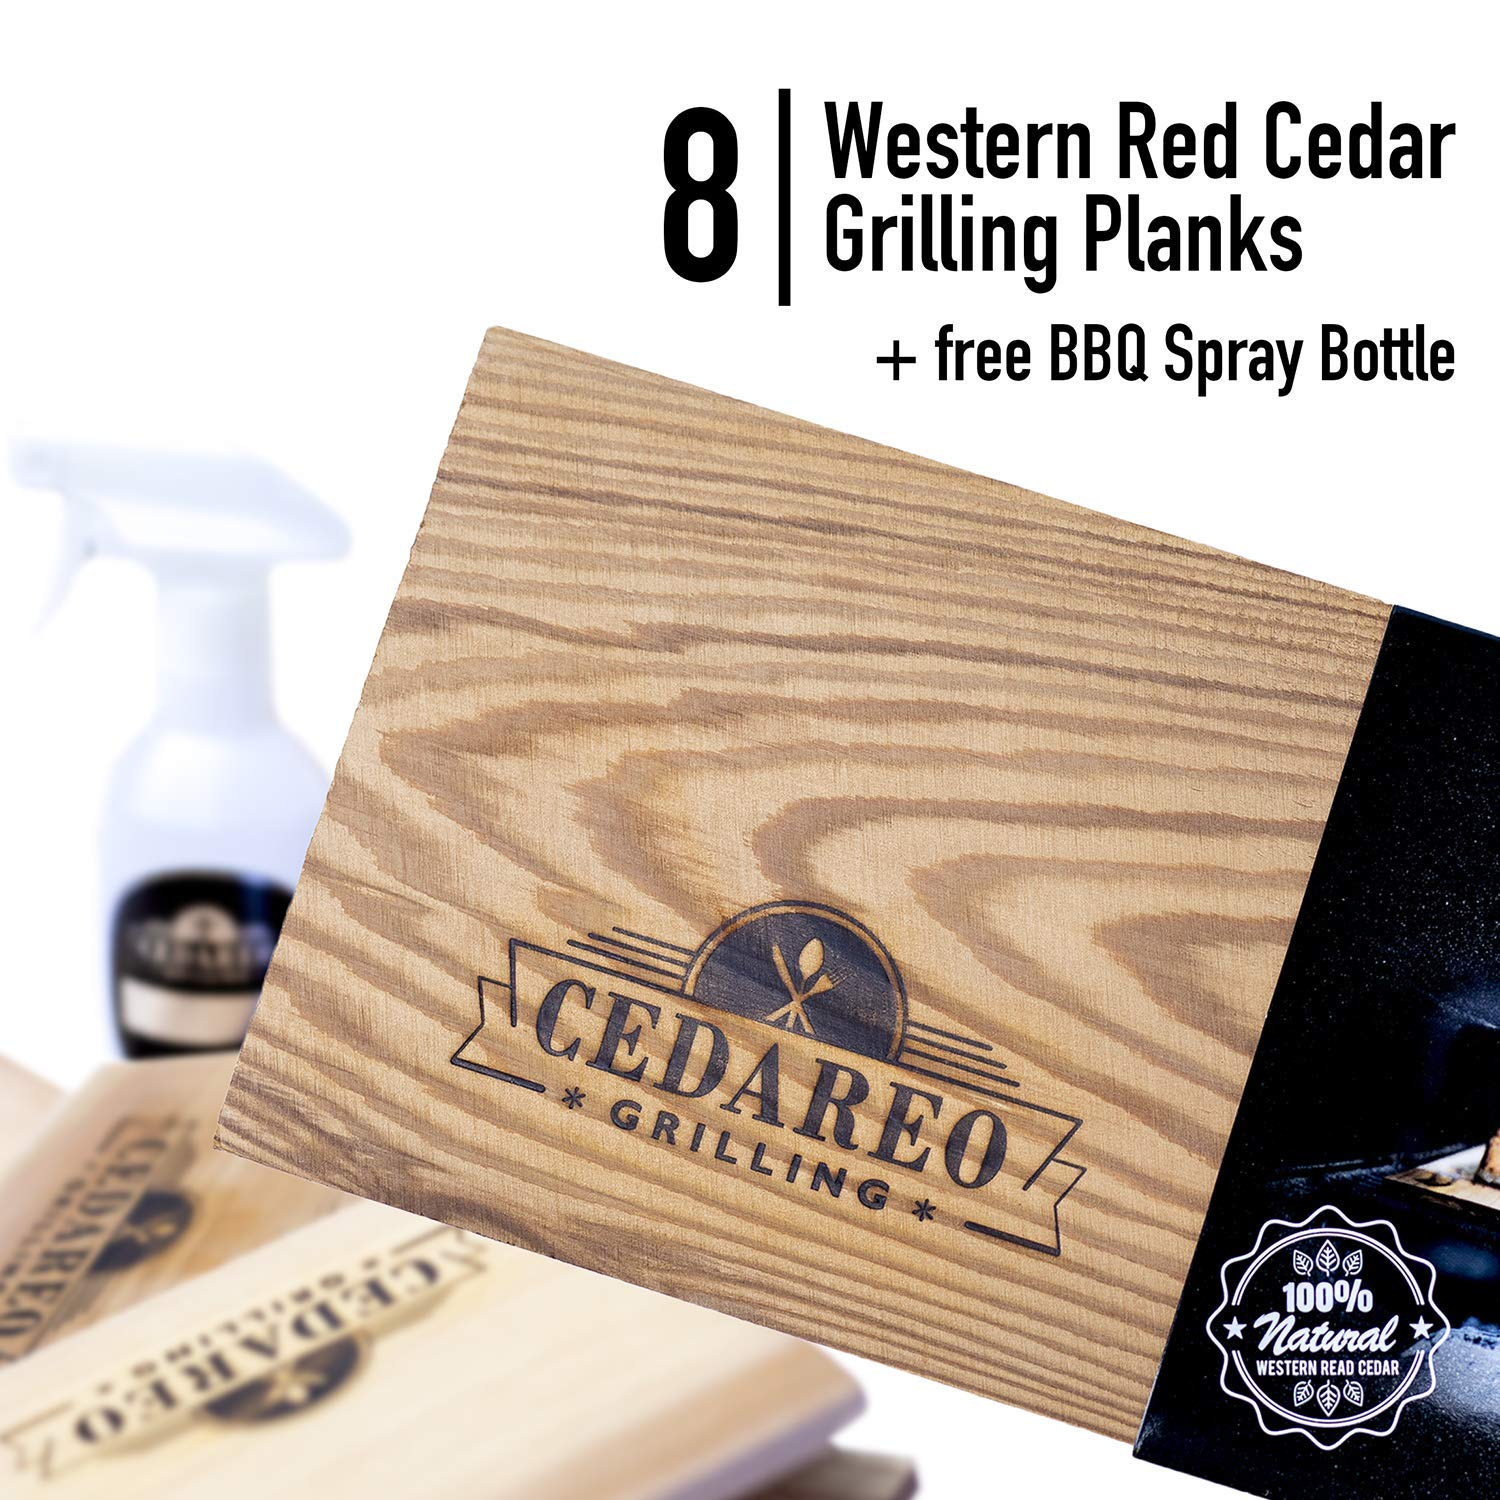 CEDAREO Cedar Grilling Planks - 8 Cedar Planks for Grilling Salmon Steaks and Vegetables - Fish and Barbecue Smoking and Grilling Accessories Size 15'' x 5 1/2'' x 3/8 - Bonus BPA Free BBQ Spray Bottle by CEDAREO